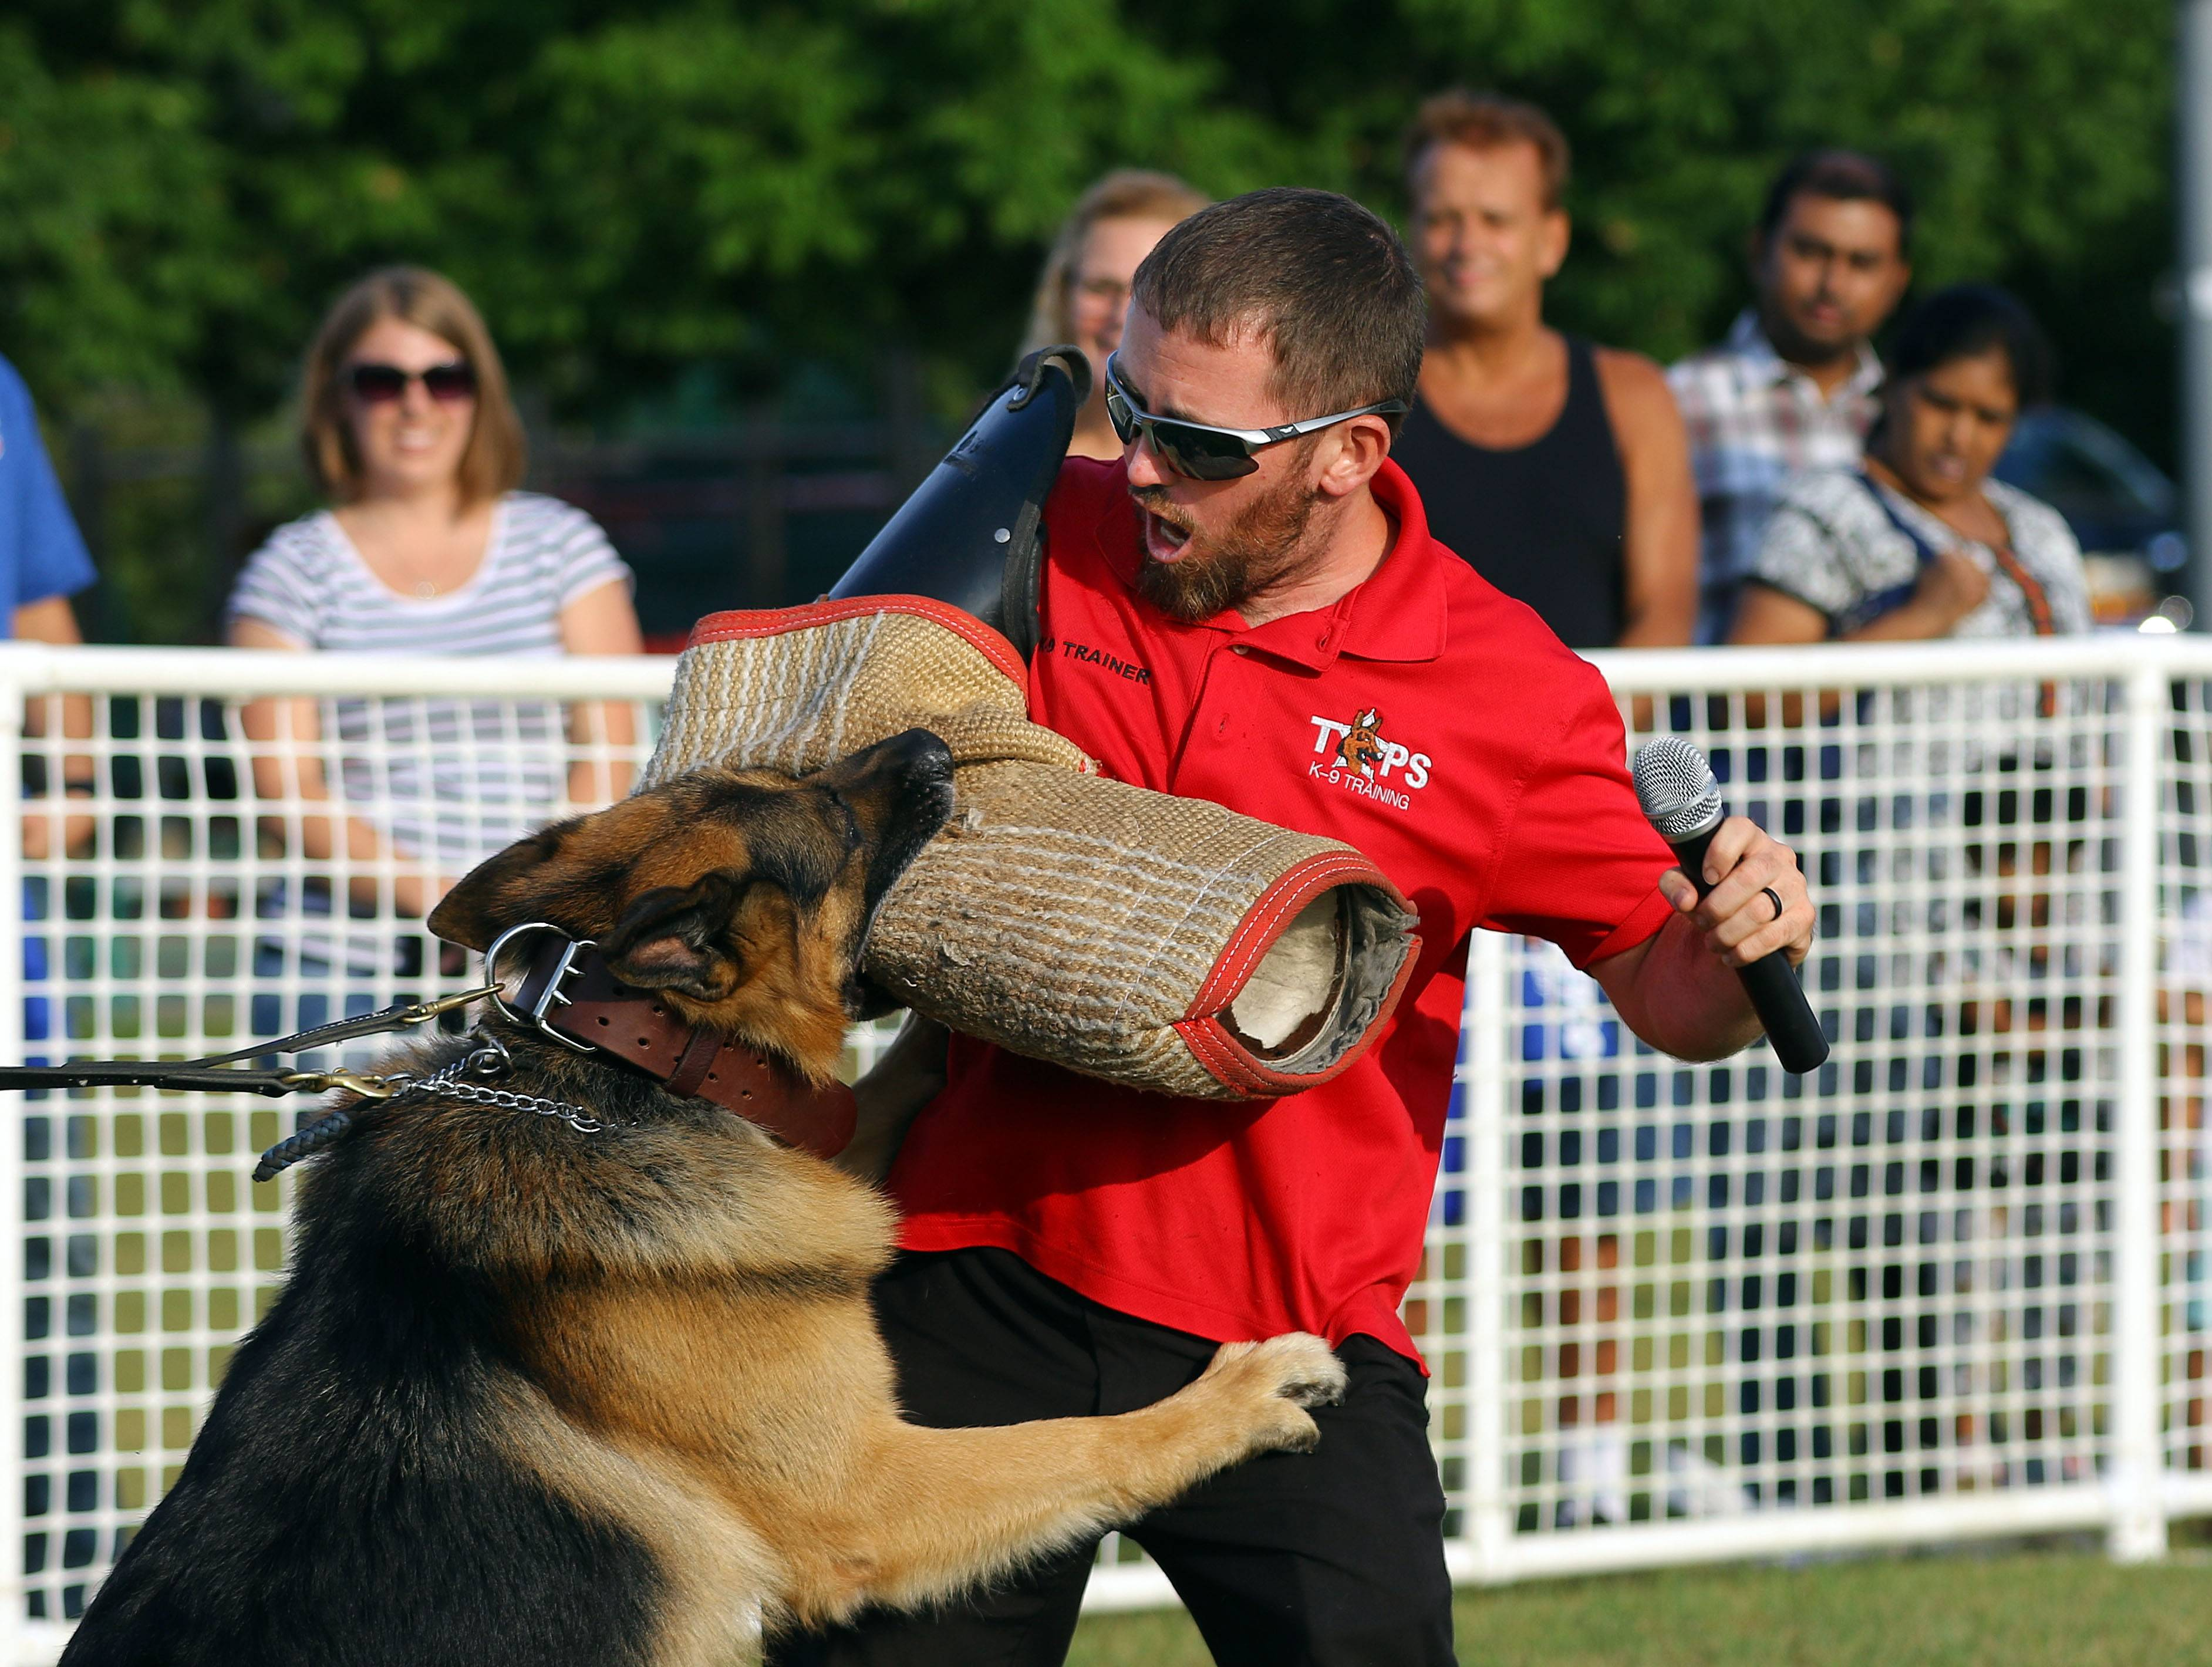 T.O.P.S. trainer Derek Collins puts on a demonstration with police dog Odin during Lincolnshire's annual National Night Out festivities at North Park Friday.